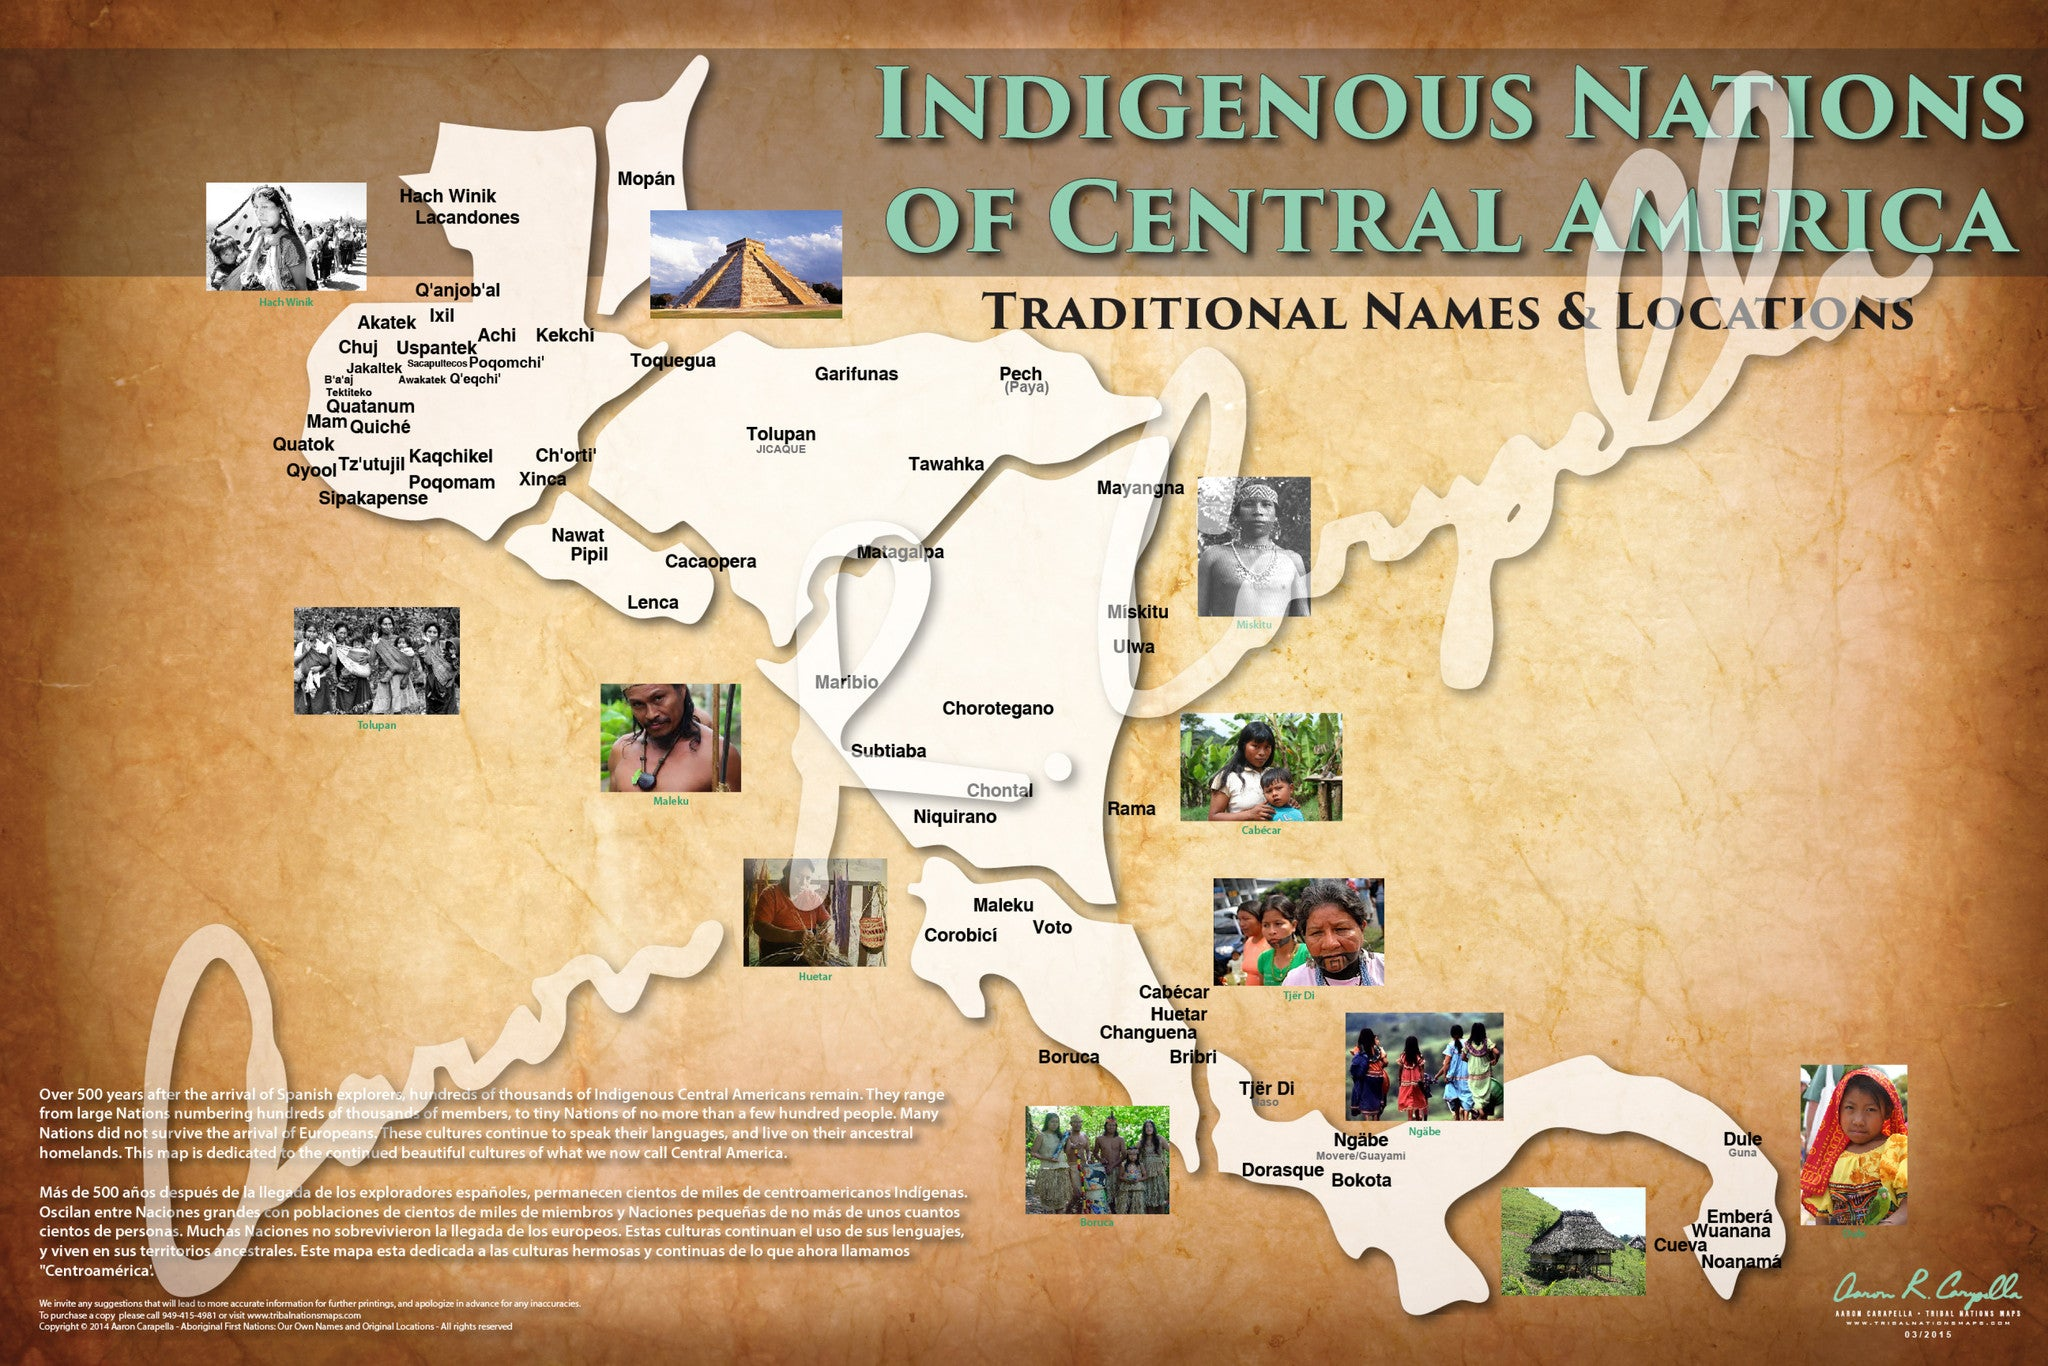 Central America - Indigenous Nations of Central America Map - Native and Common Names